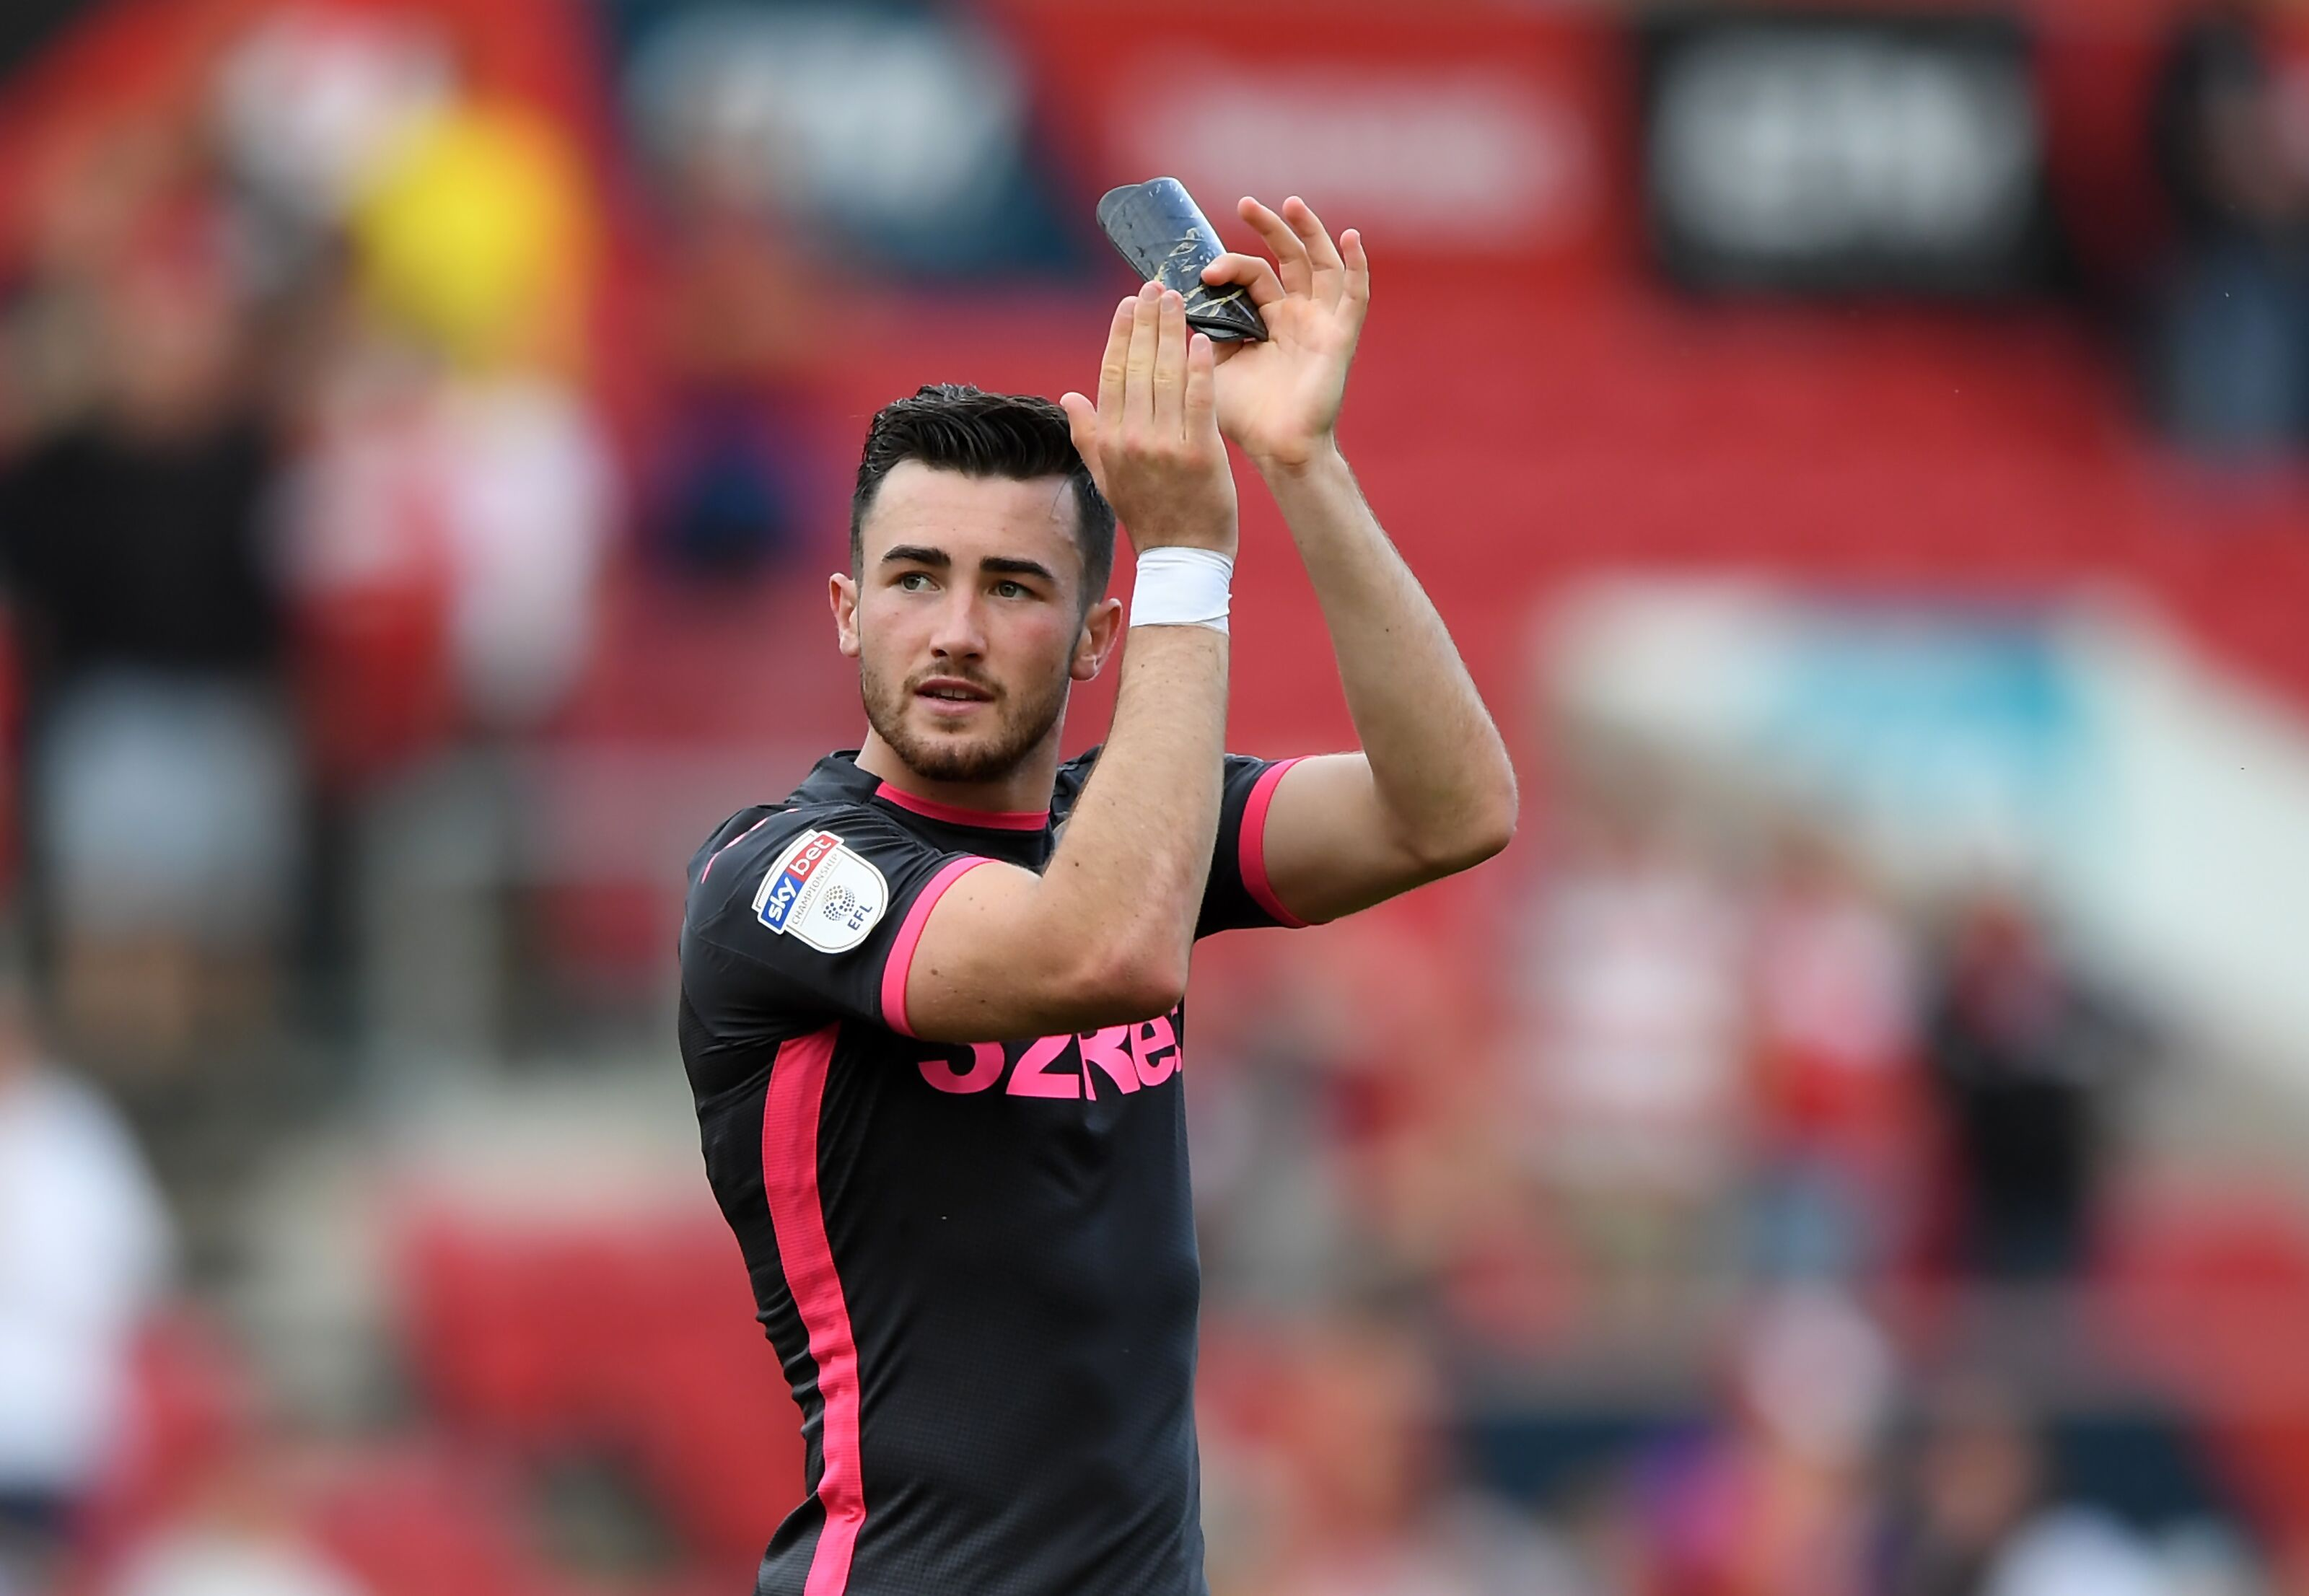 Manchester City's Jack Harrison Impresses at Leeds United